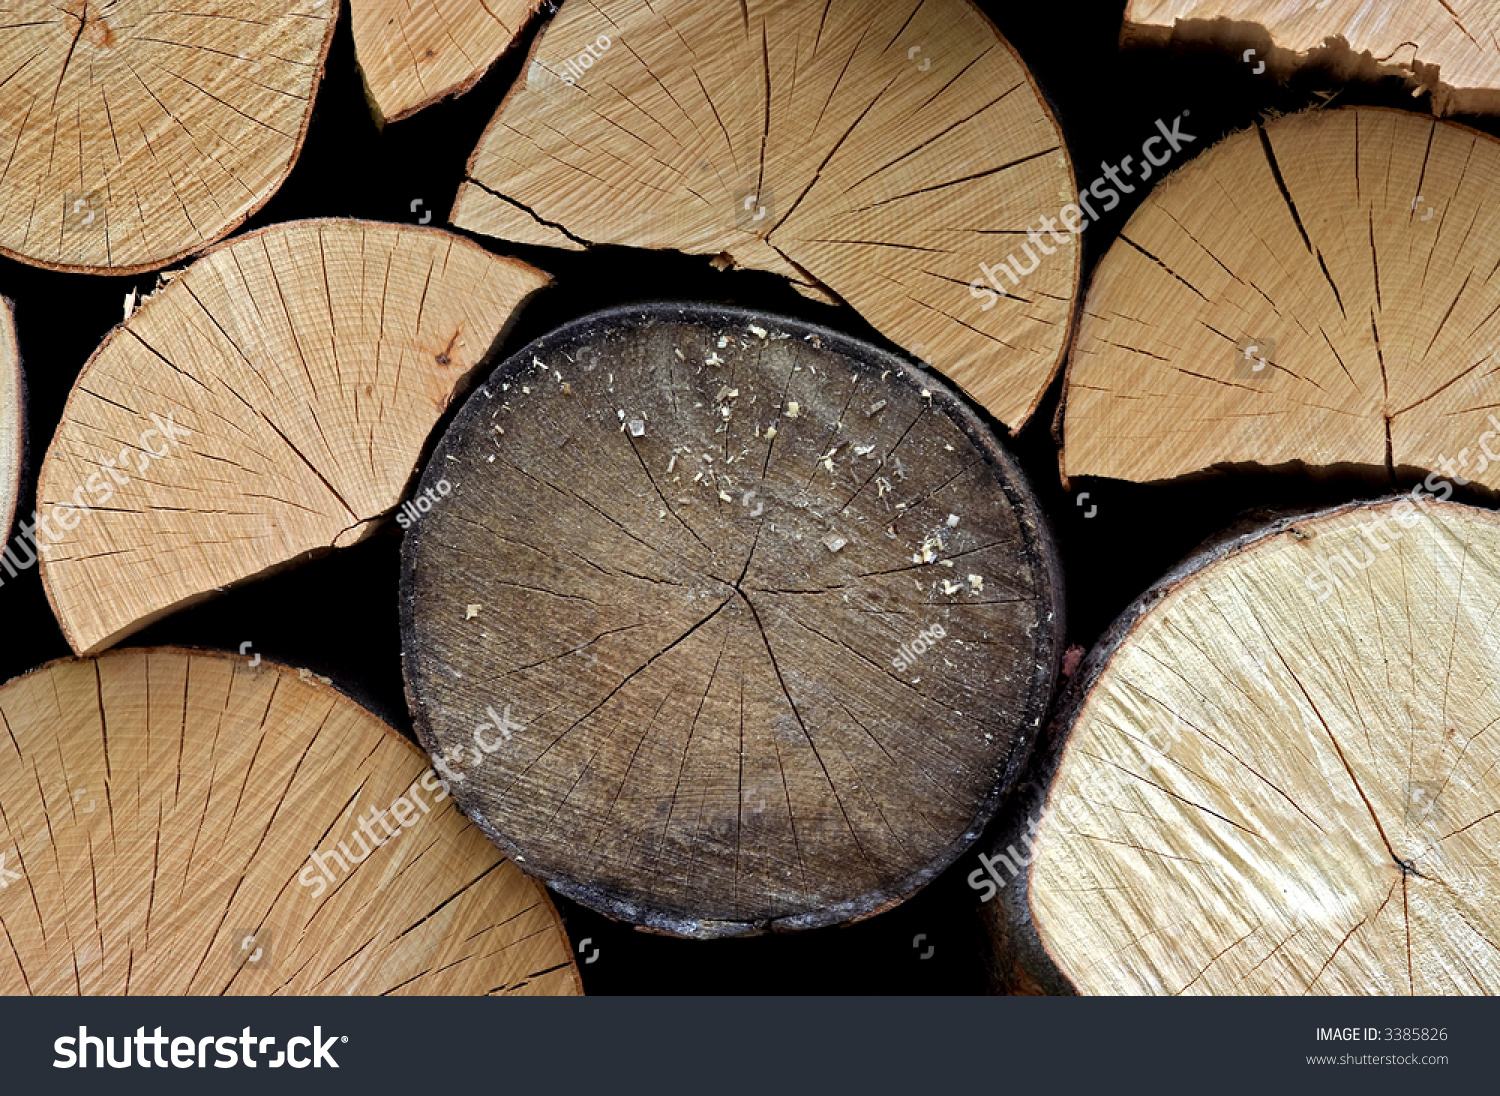 Billet Wood Stock Photo (Edit Now) 3385826 - Shutterstock